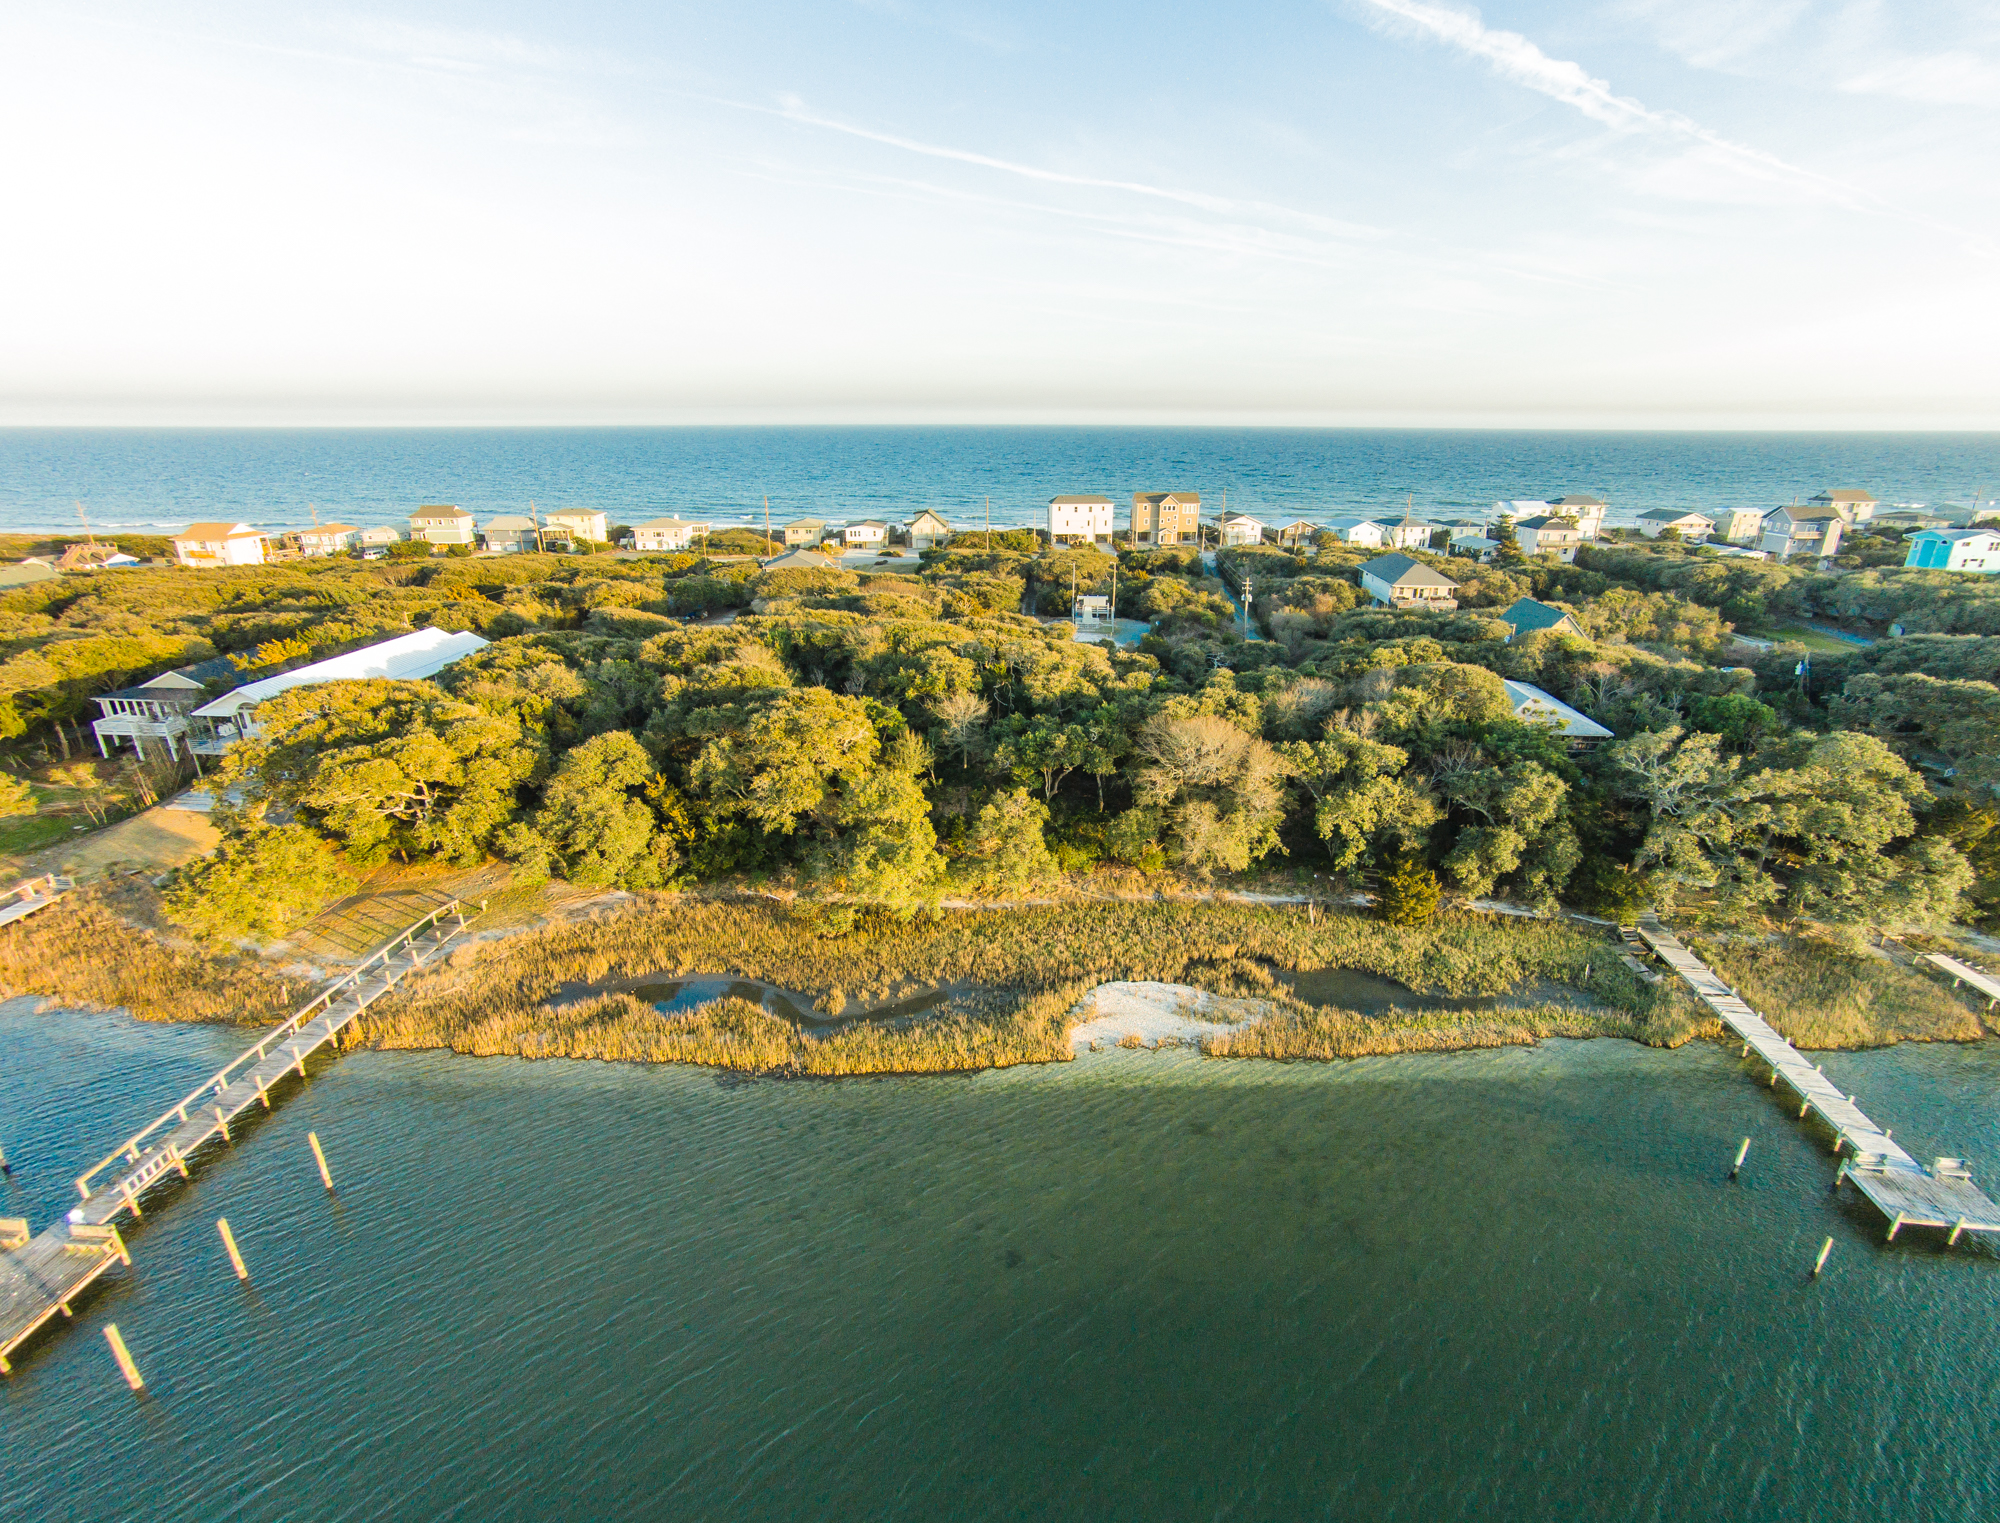 Land for Sale at Soundfront Lot TBD-1 N Anderson Blvd Topsail Beach, North Carolina, 28445 United States